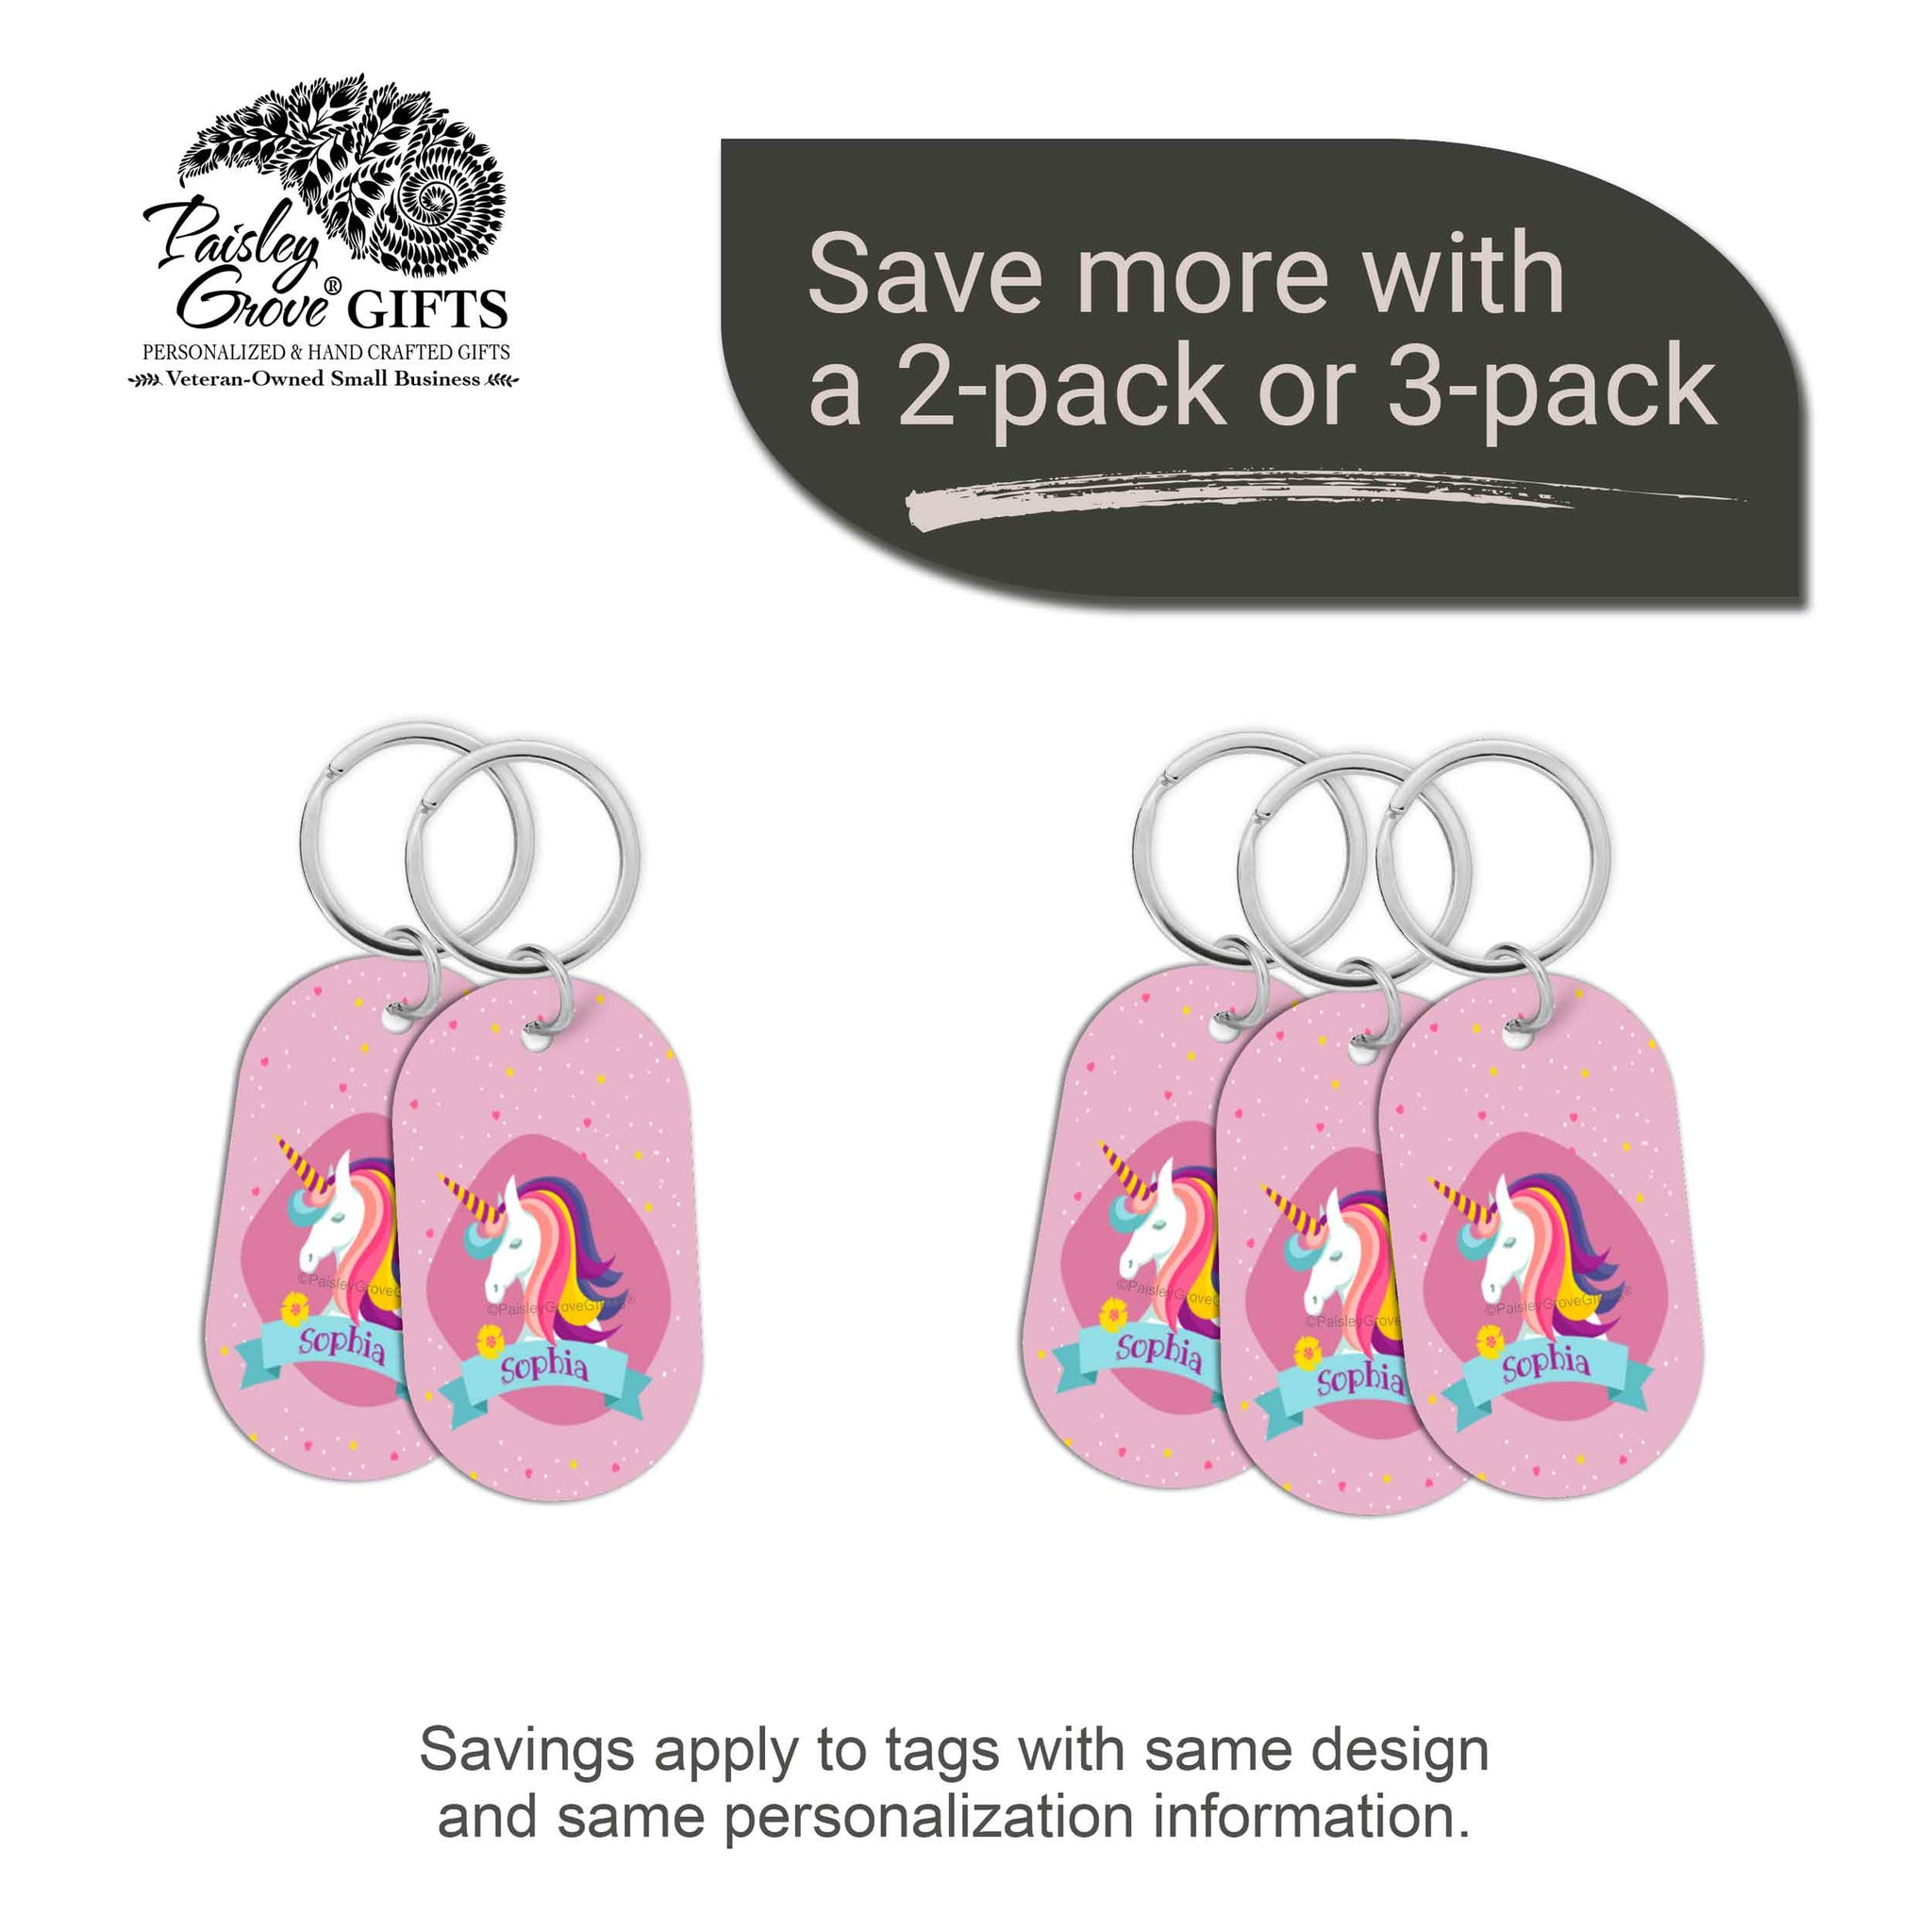 CopyrightPaisleyGroveGIFTS S070d1 Personalized bag ID tags for luggage or bags 2 or 3 pack option savings